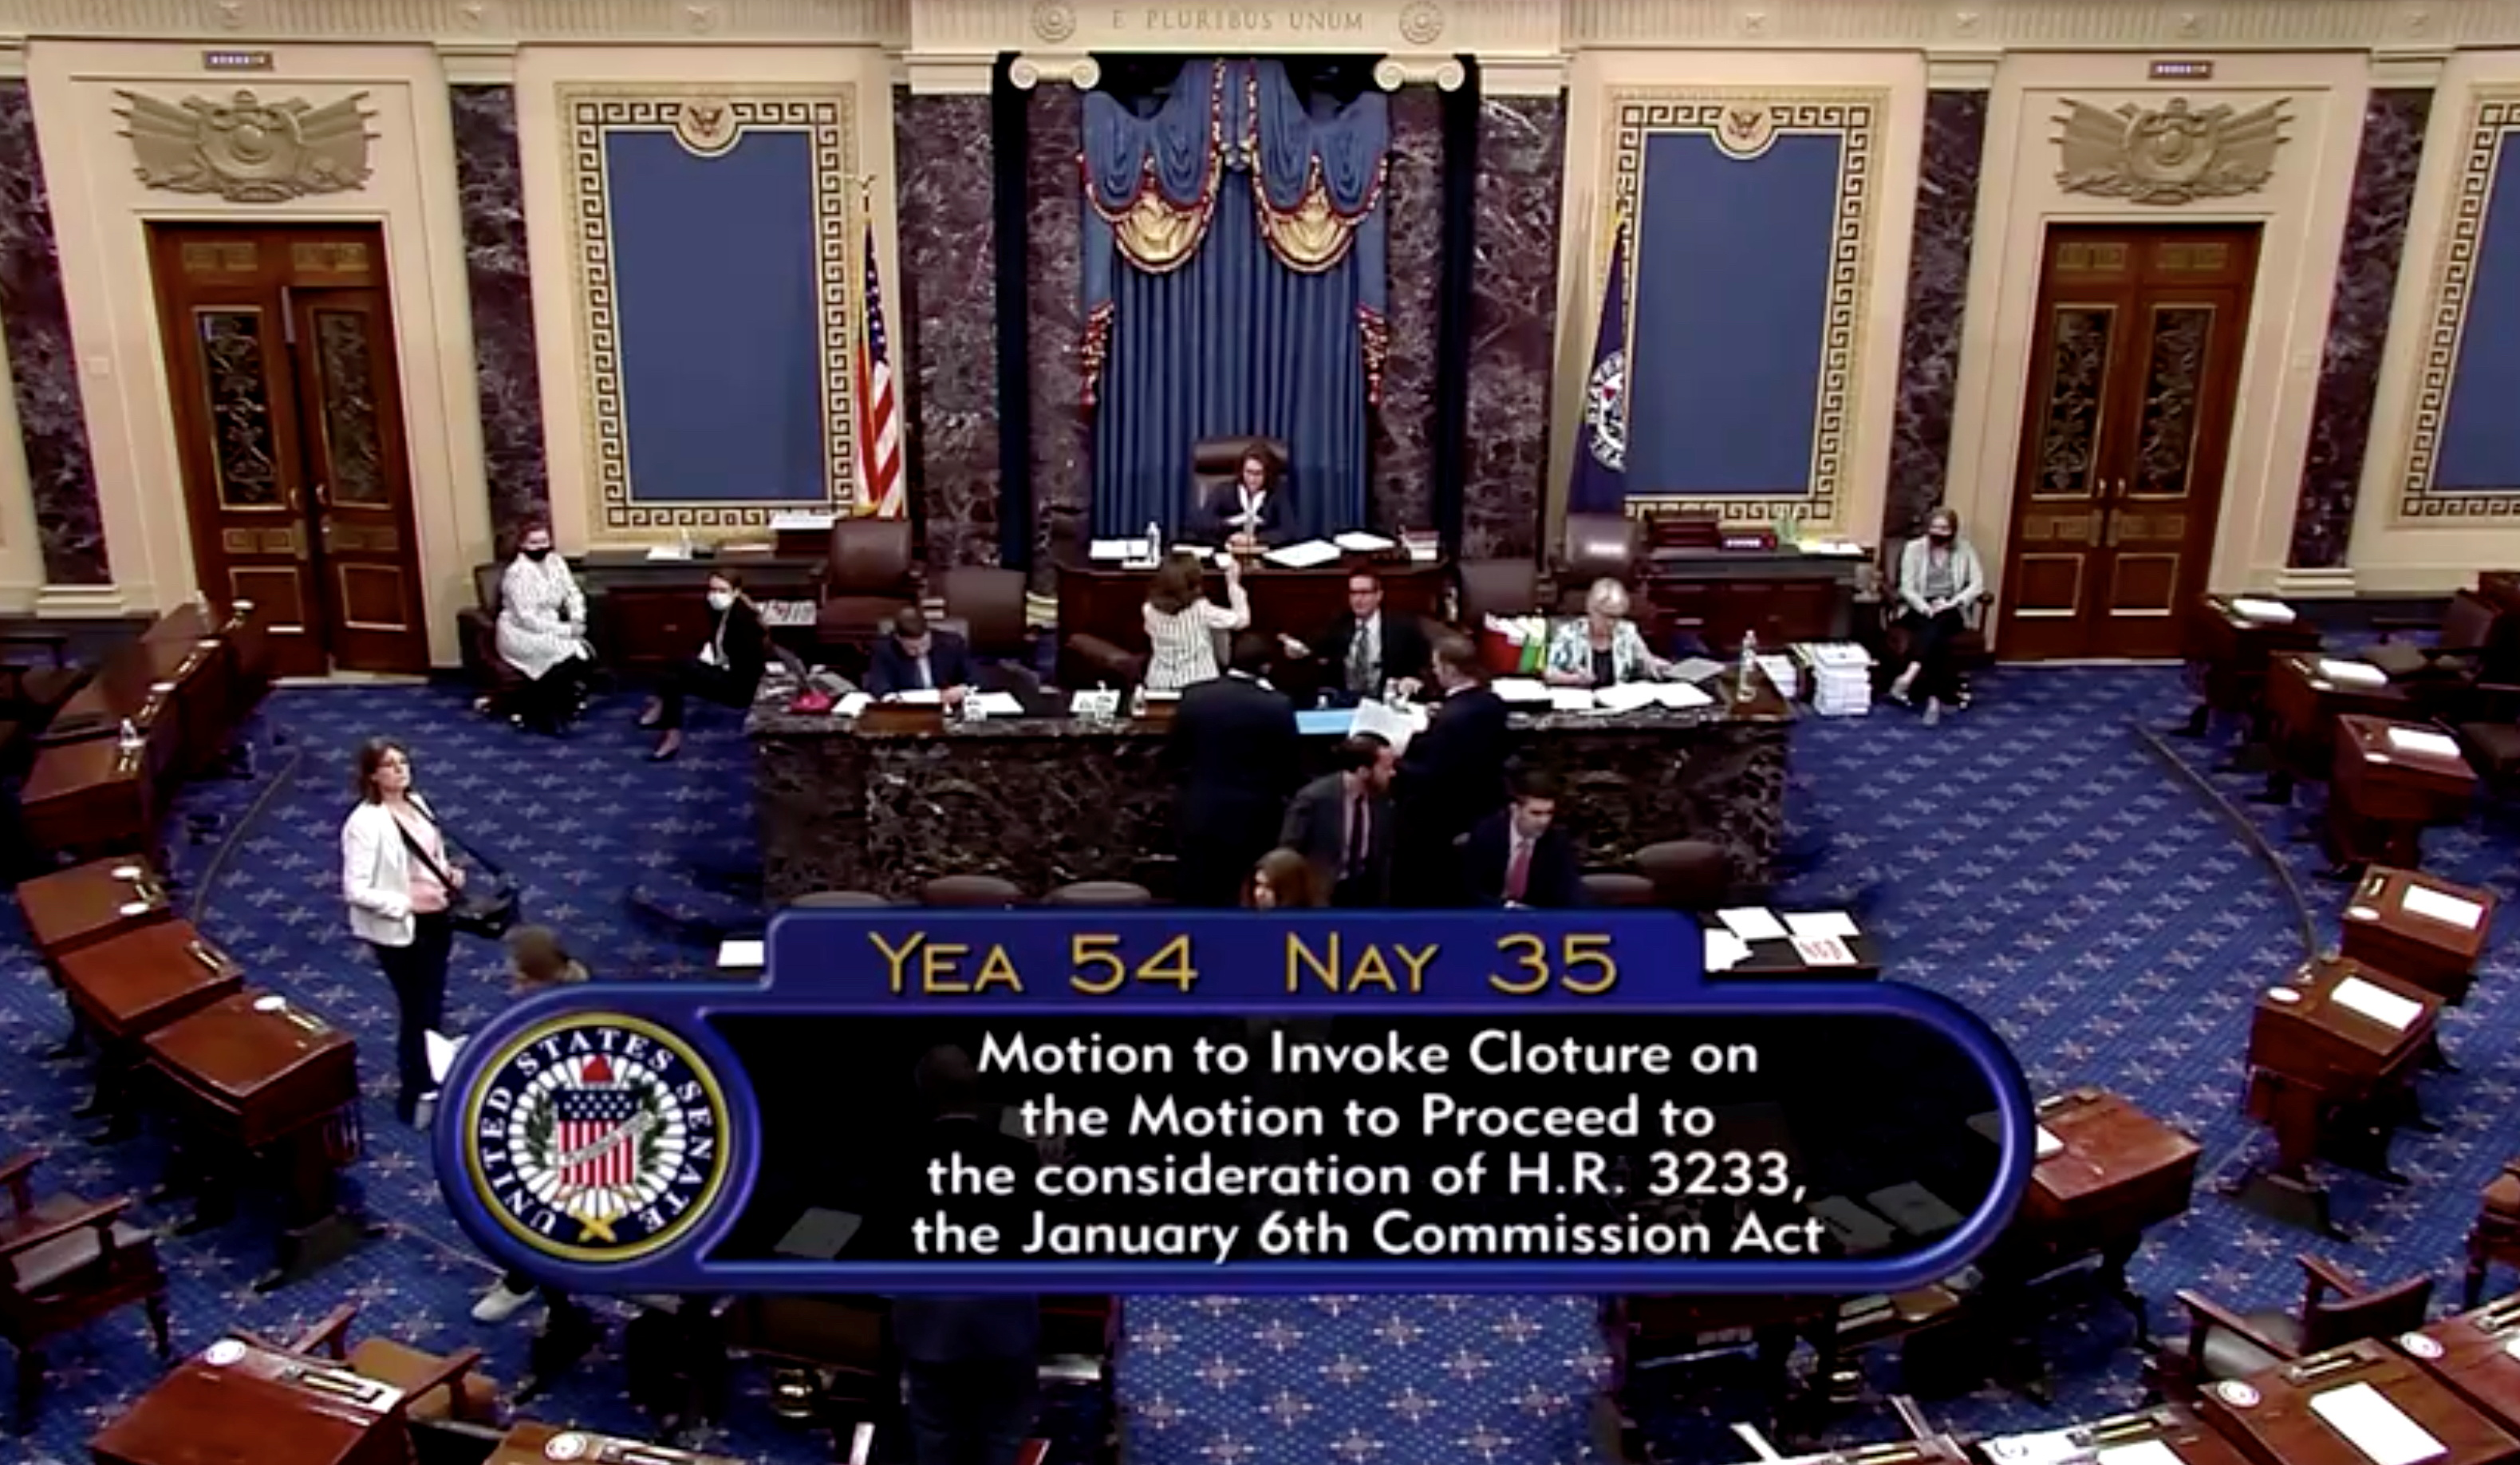 Legislation to create a bipartisan commission to investigate the January 6, 2021 assault on the Capitol by supporters of former President Donald Trump fails by a vote of 54-35 margin as Republicans in the Senate use their filibuster to block passage of the bill in this still image taken from a video shot in the Senate Chamber on Capitol Hill in Washington, May 28, 2021. U.S. Senate TV via REUTERS